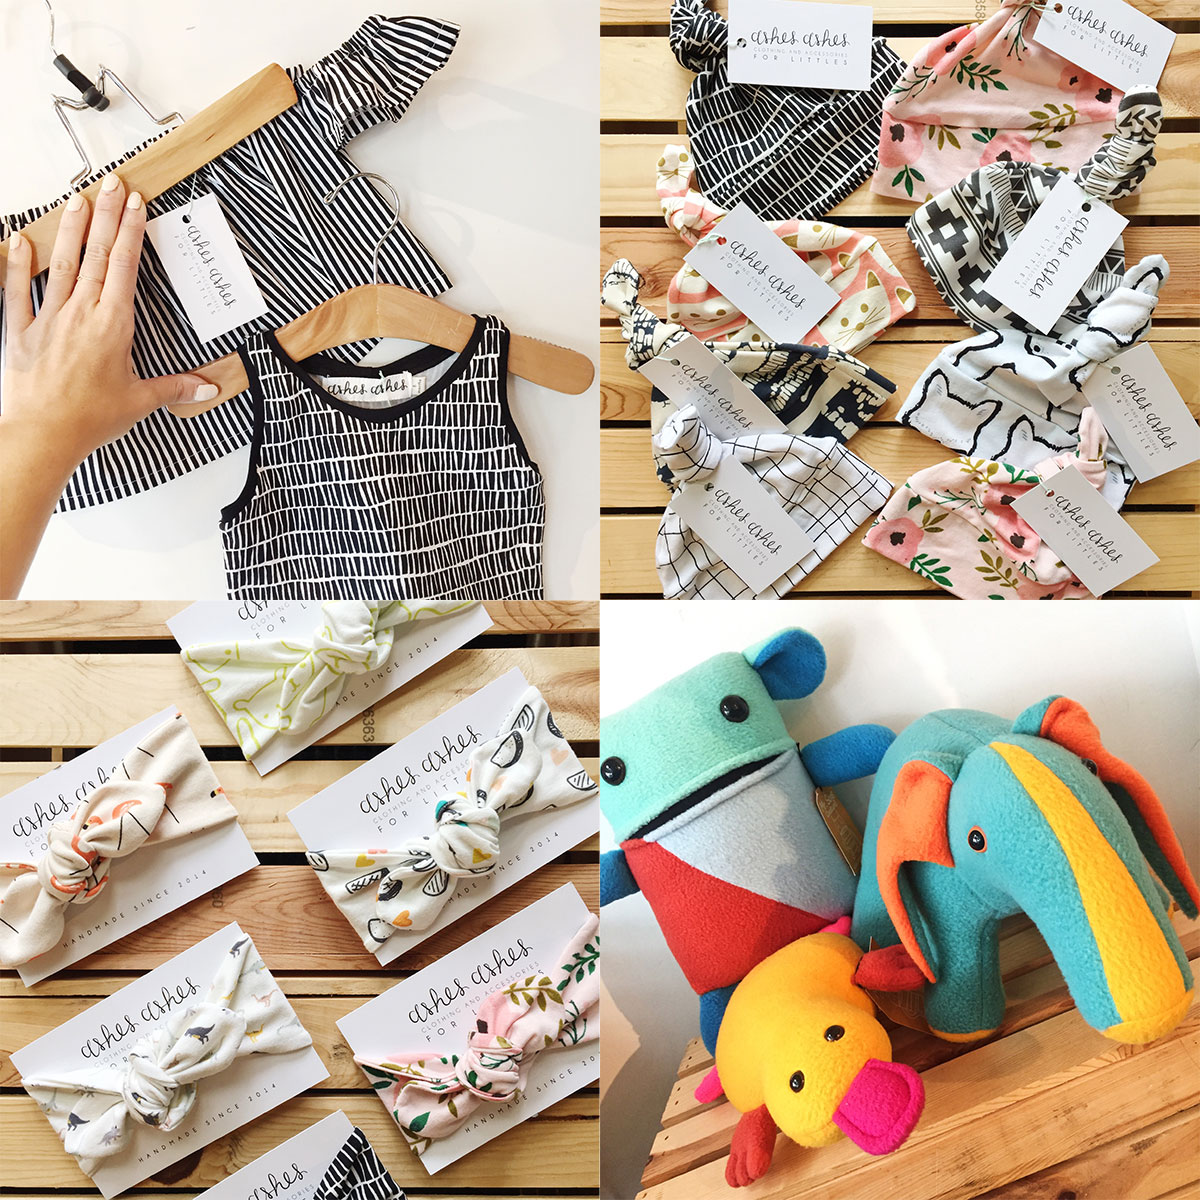 ICYMI August 24 Homespun Modern Handmade Baby Goods